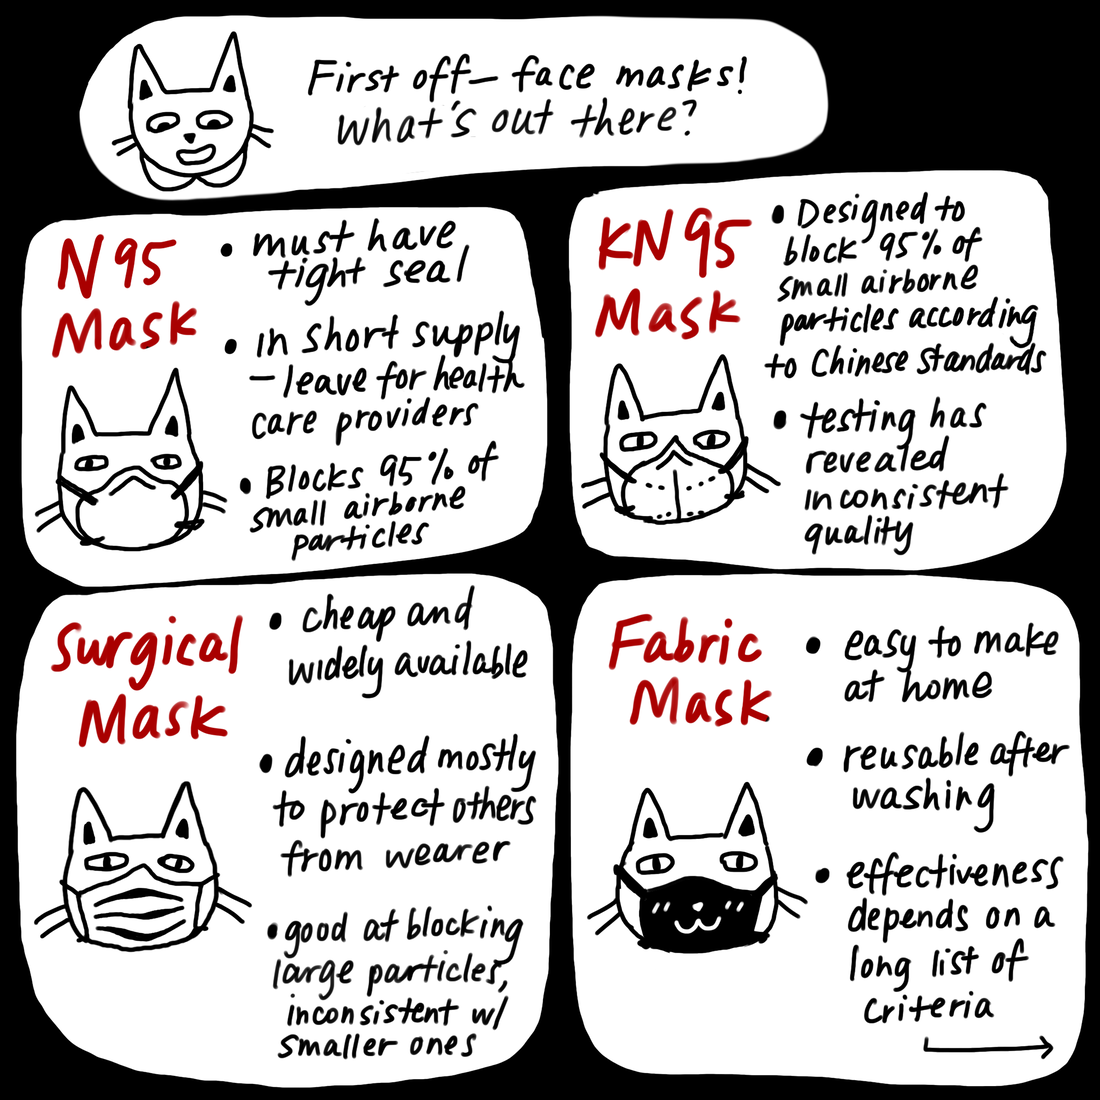 First off, face masks! What's out there? N95 masks block 95% of small airborne particles, but are in short supply. KN95s are the Chinese counterpart, but testing has revealed inconsistent quality. Surgical masks are designed to mostly protect others from the wearer. The effectiveness of fabric masks depends on different criteria.